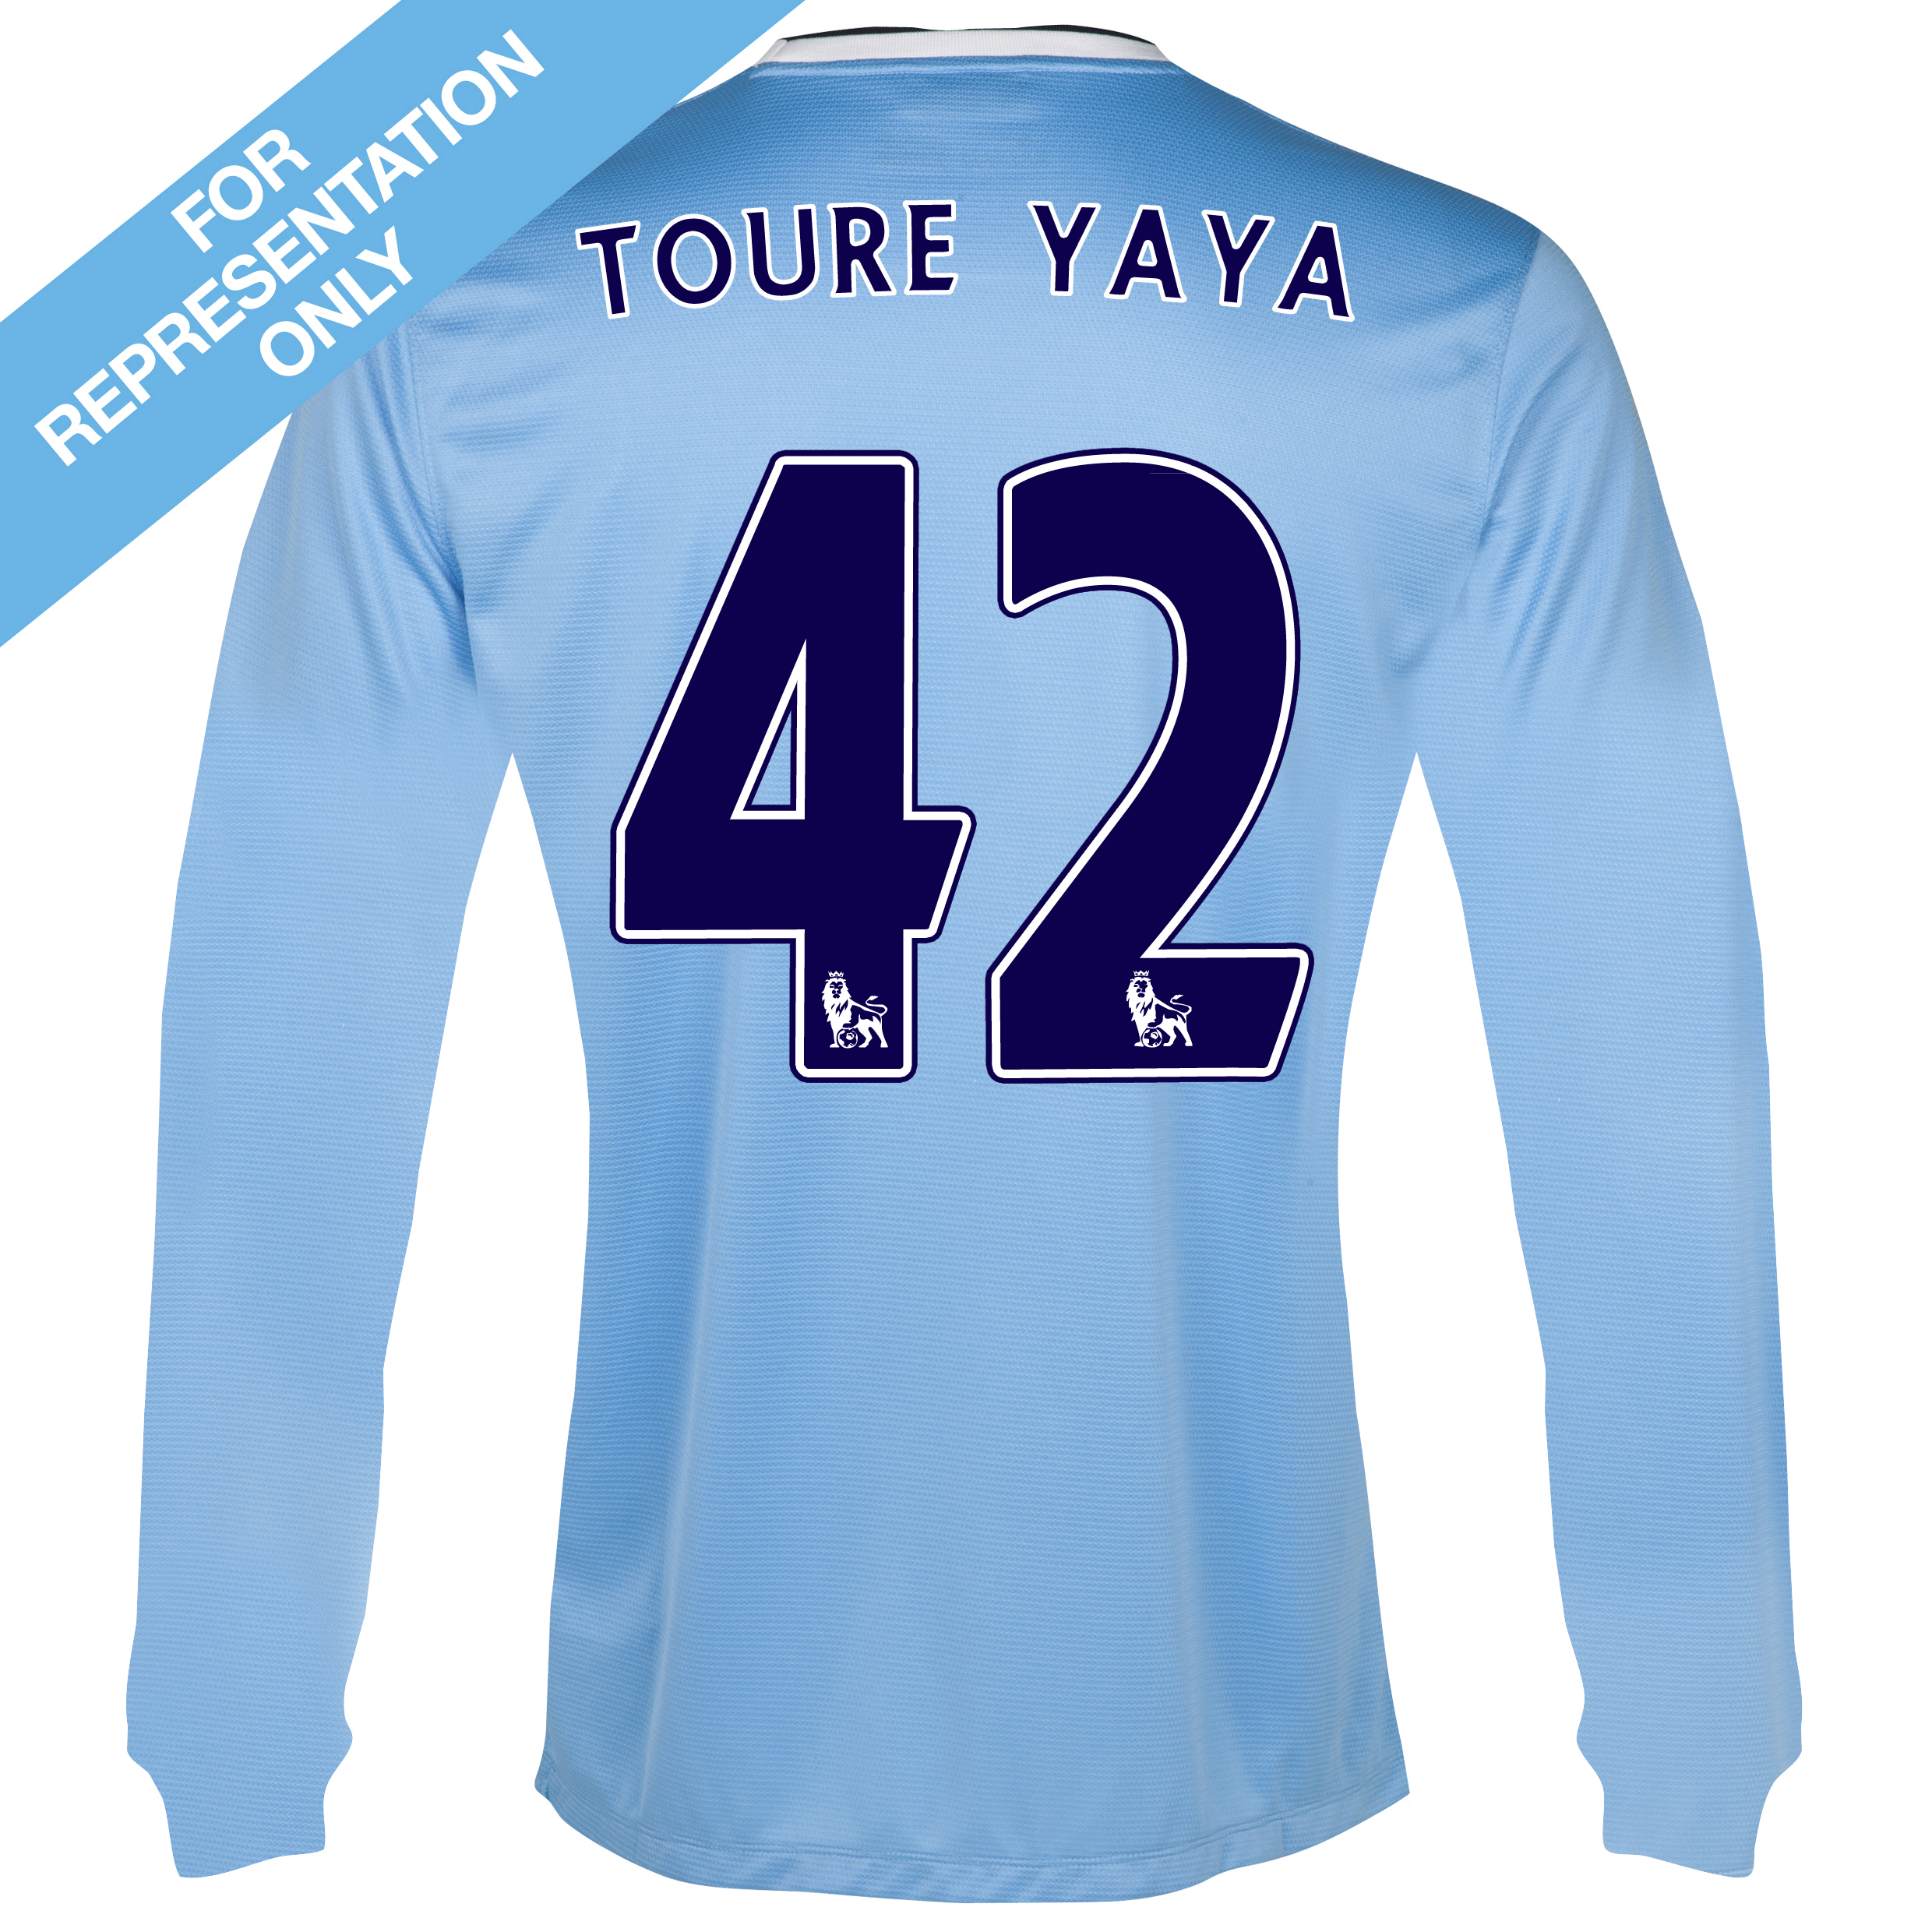 Manchester City Home Shirt 2013/14 - Long Sleeved with Toure Yaya 42 printing